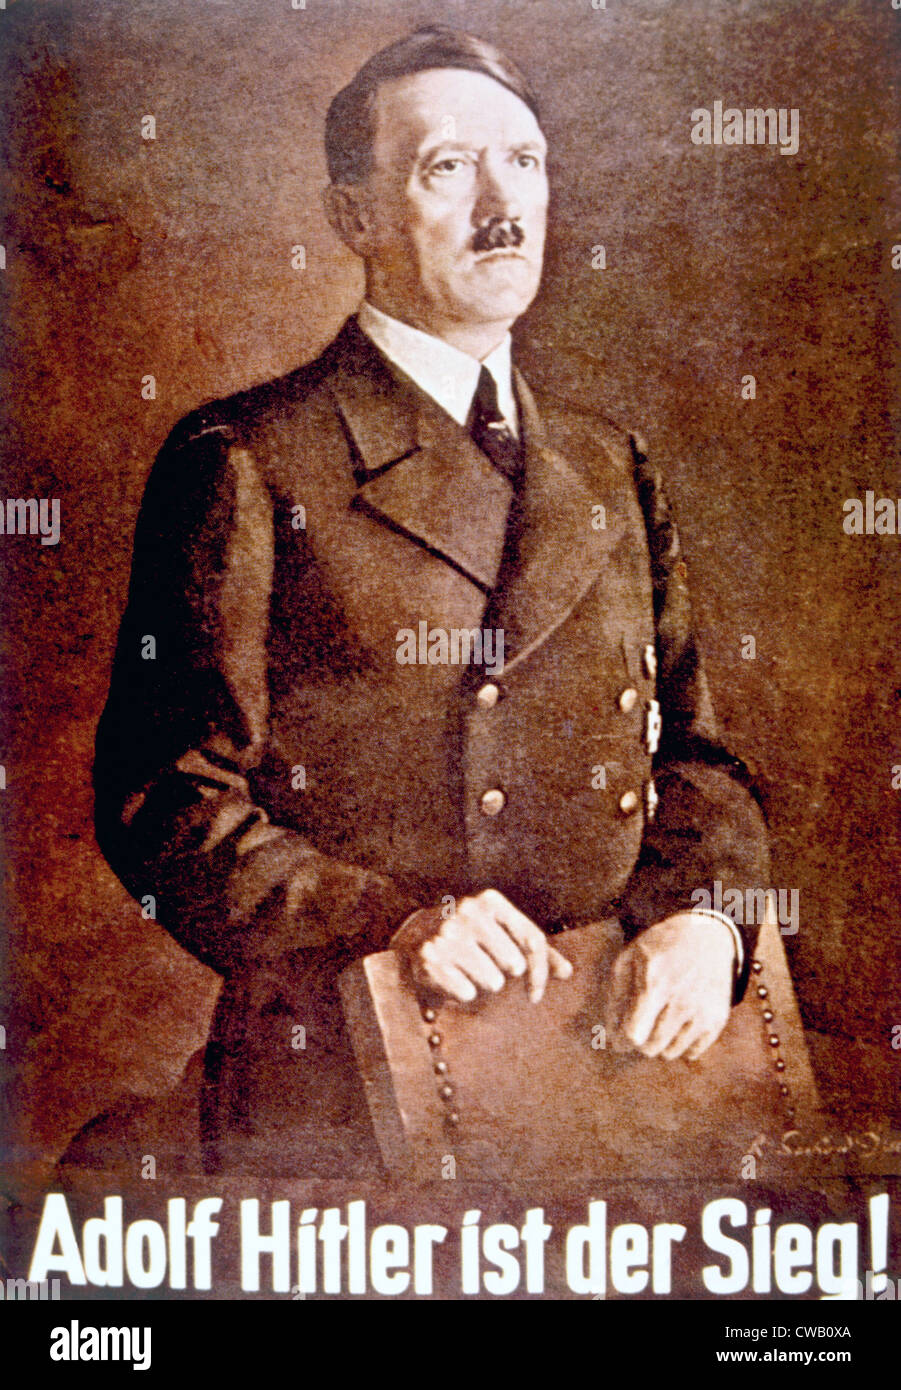 Adolf Hitler (1889-1945) in 'Adolf Hitler is Victory!' poster, ca. 1940 - Stock Image